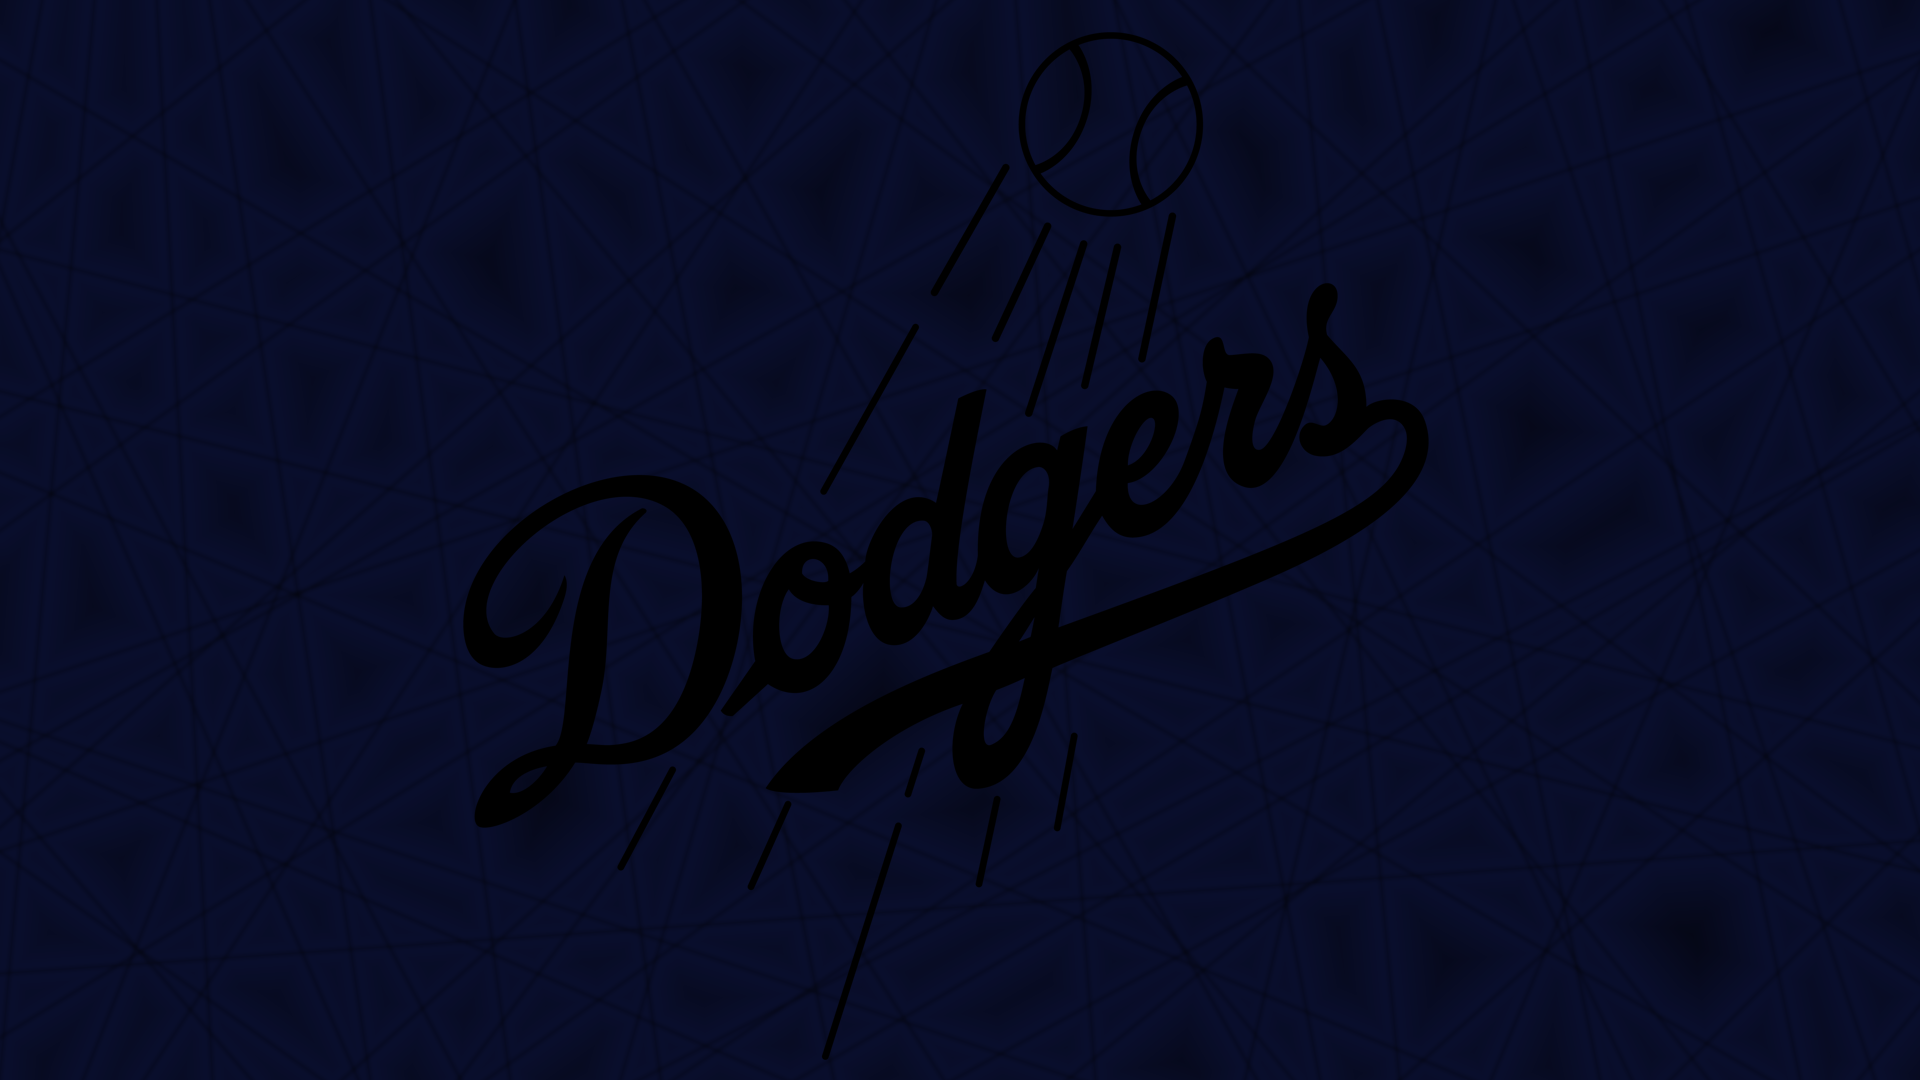 Enjoy this new Los Angeles Dodgers desktop backgrounds